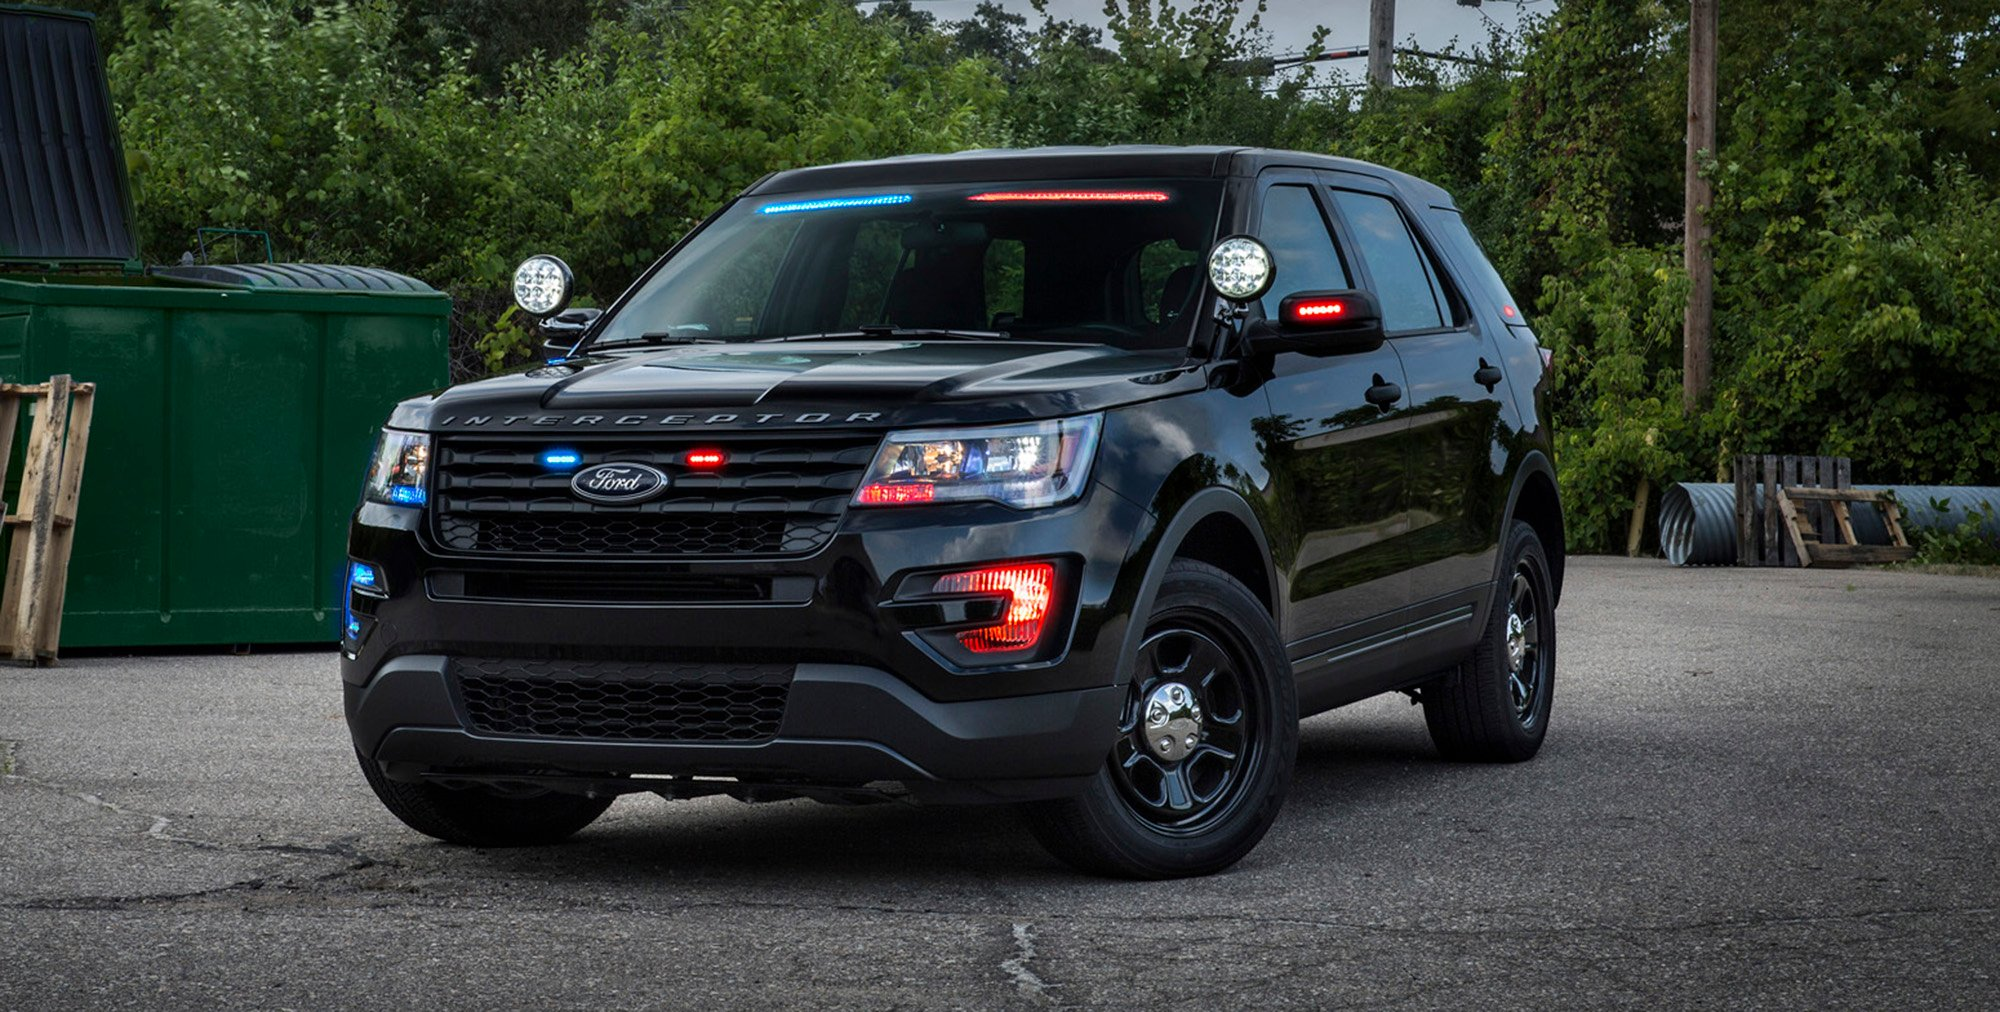 ford unveils no profile light bar for police interceptor vehicles photos caradvice. Black Bedroom Furniture Sets. Home Design Ideas